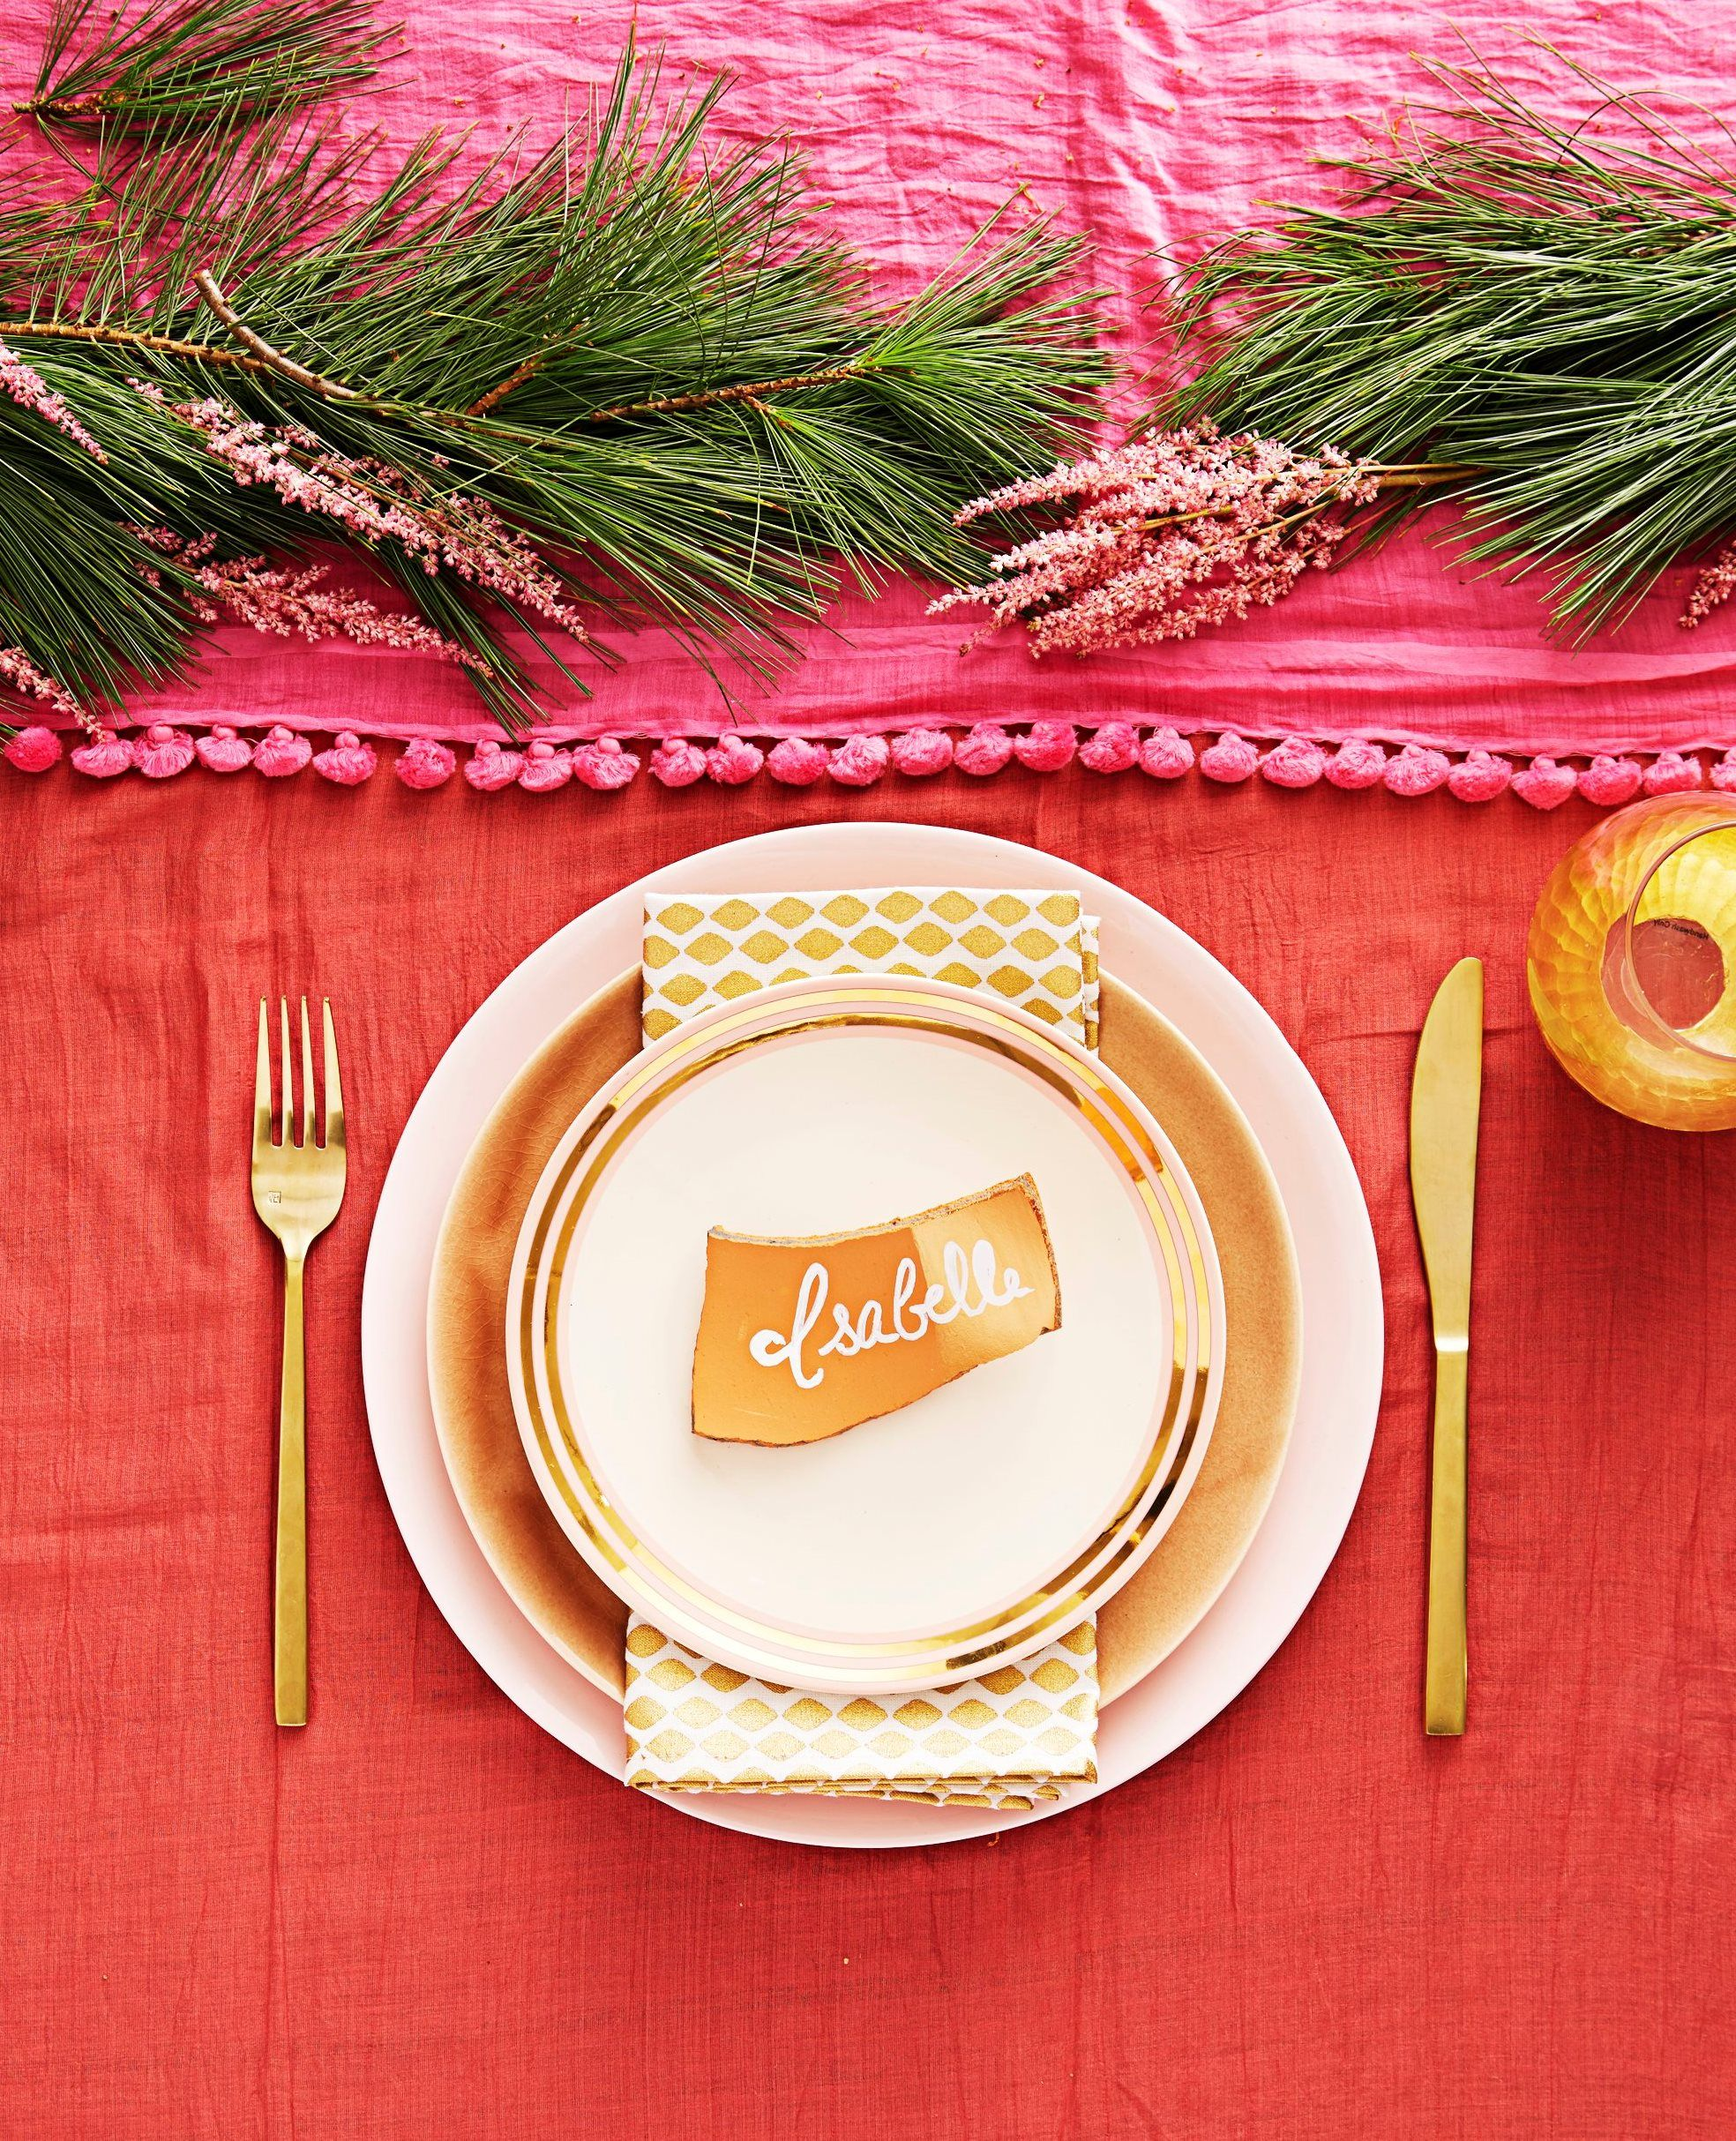 9 stunning and stylish holiday tablescapes for Weihnachtsideen dekoration